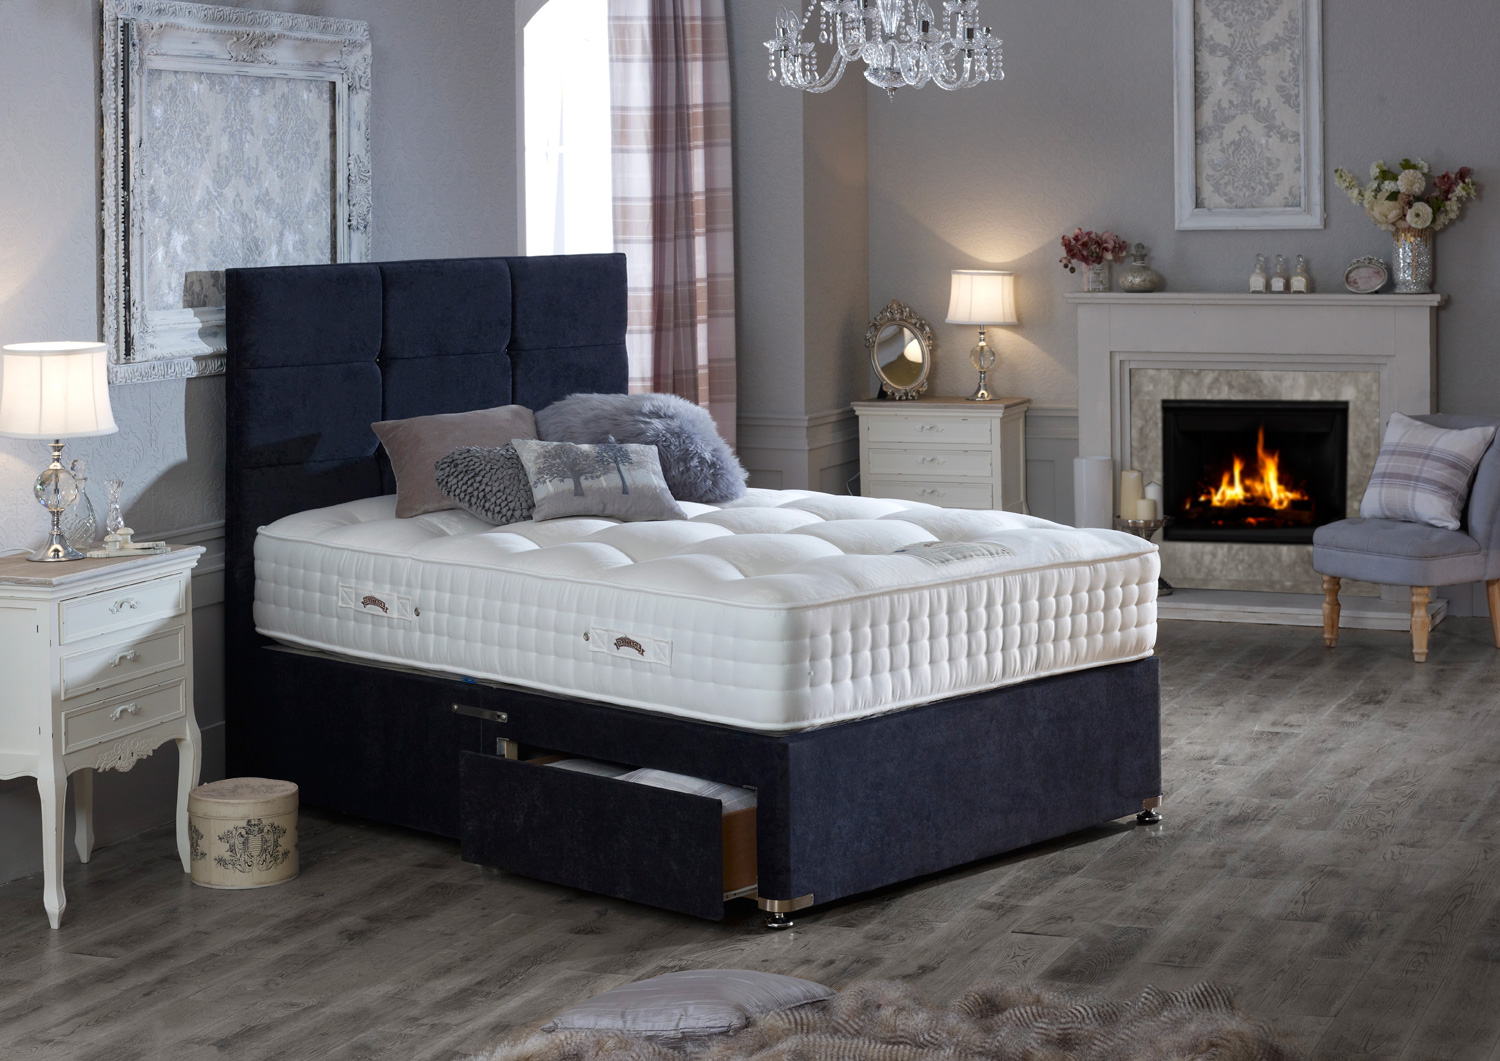 Dura Beds Mattress Bedroom Homestore